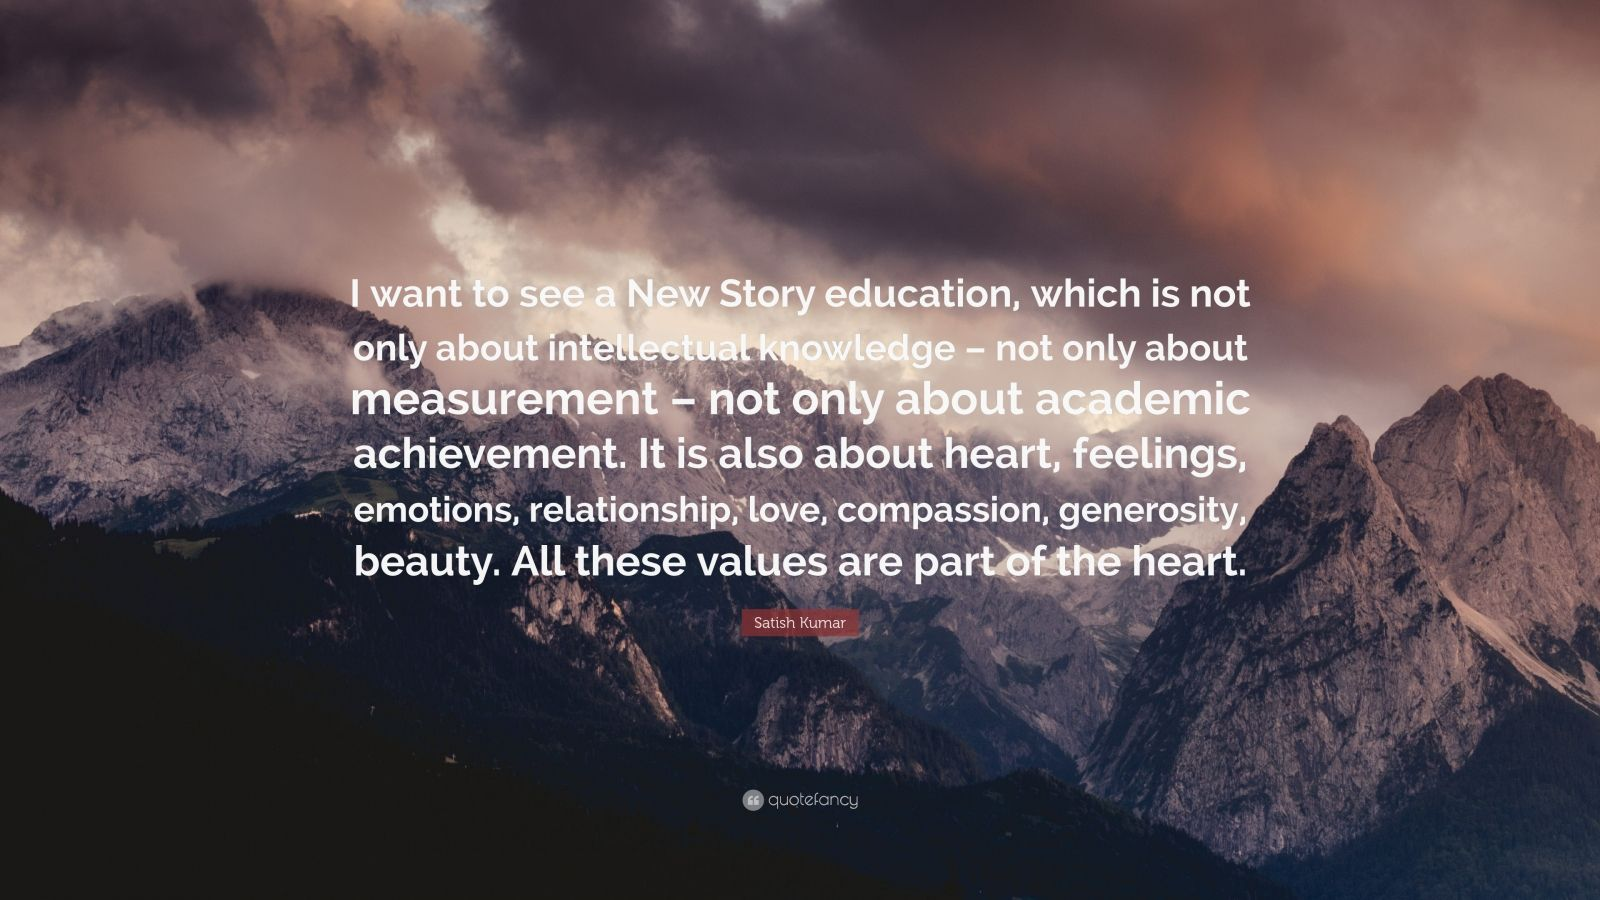 "Satish Kumar Quote: ""I want to see a New Story education, which is not only about intellectual knowledge – not only about measurement – not only about academic achievement. It is also about heart, feelings, emotions, relationship, love, compassion, generosity, beauty. All these values are part of the heart."""